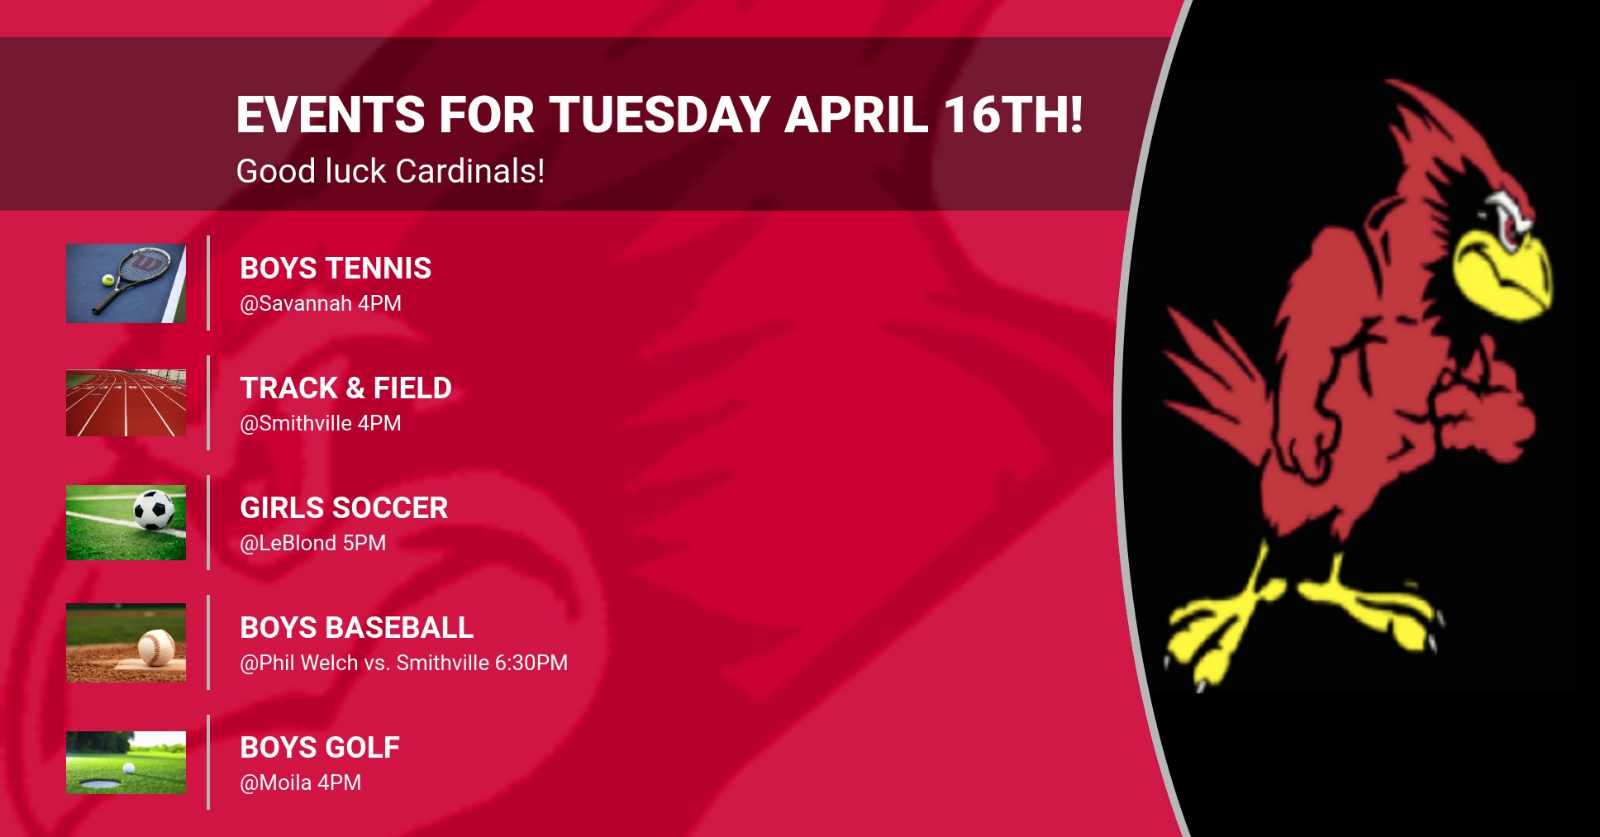 Events for Tuesday April 16th!